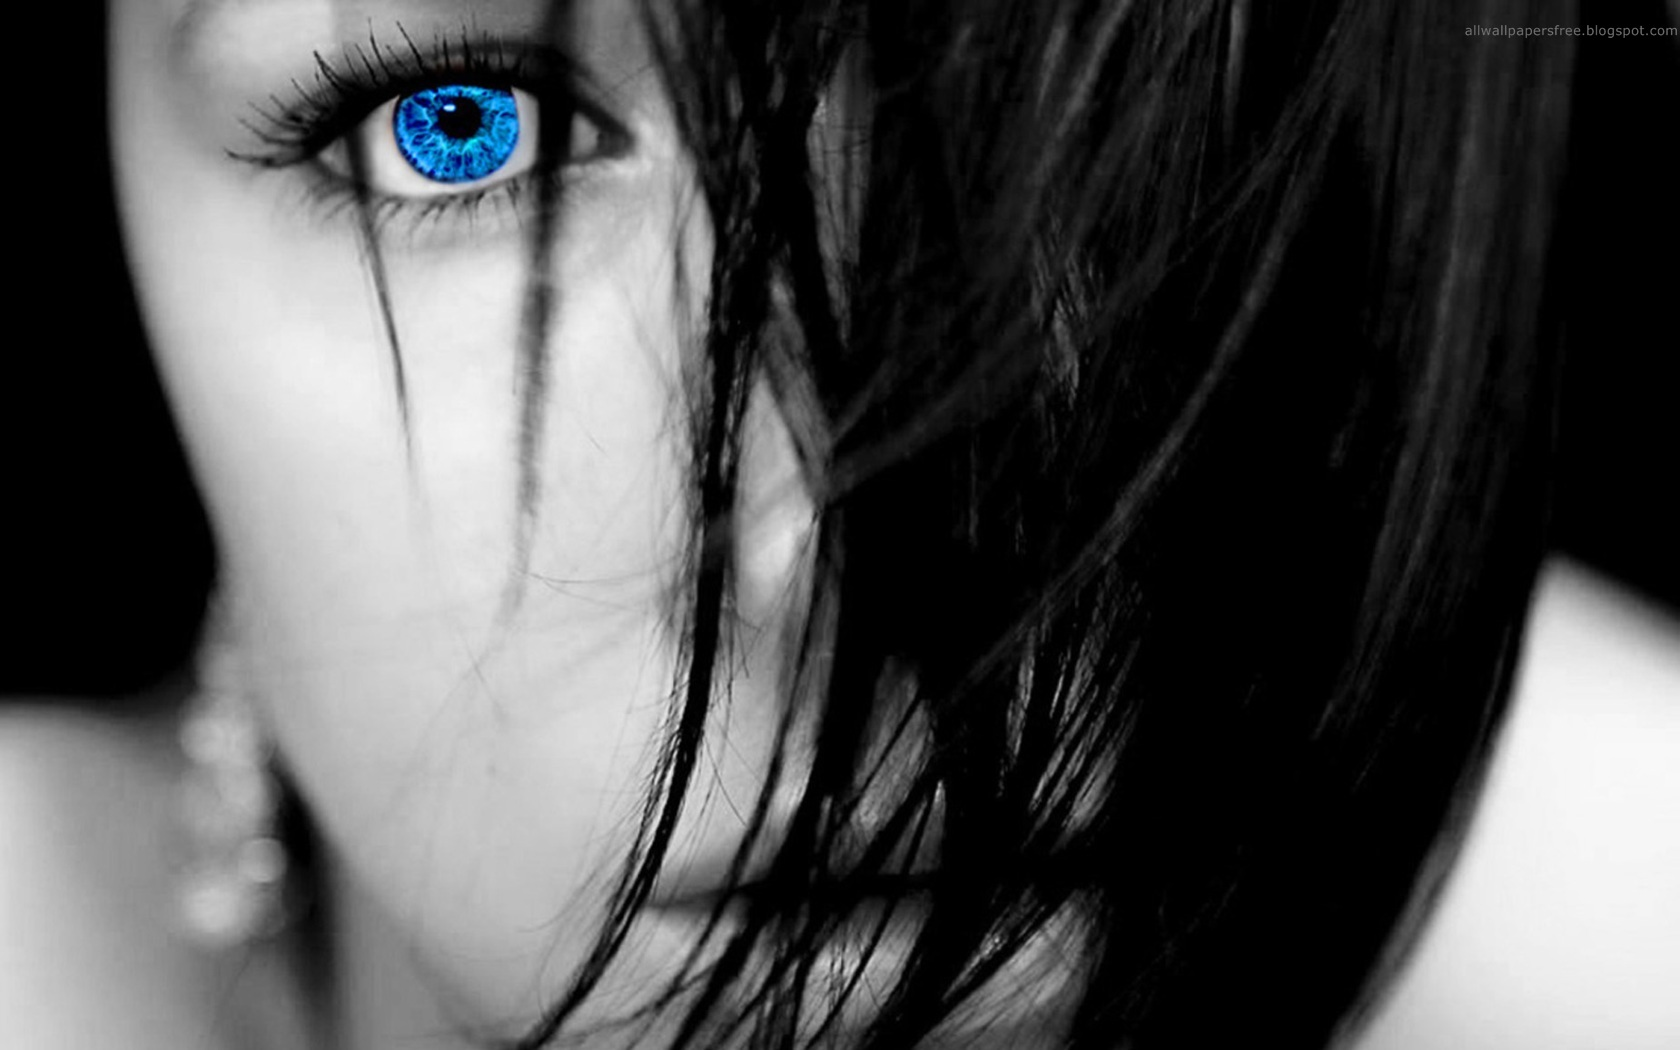 Hd wallpaper emo - Eyes Emo Girl Hd Wallpaper Has Recently Added In Stylish Hd Wallpapers